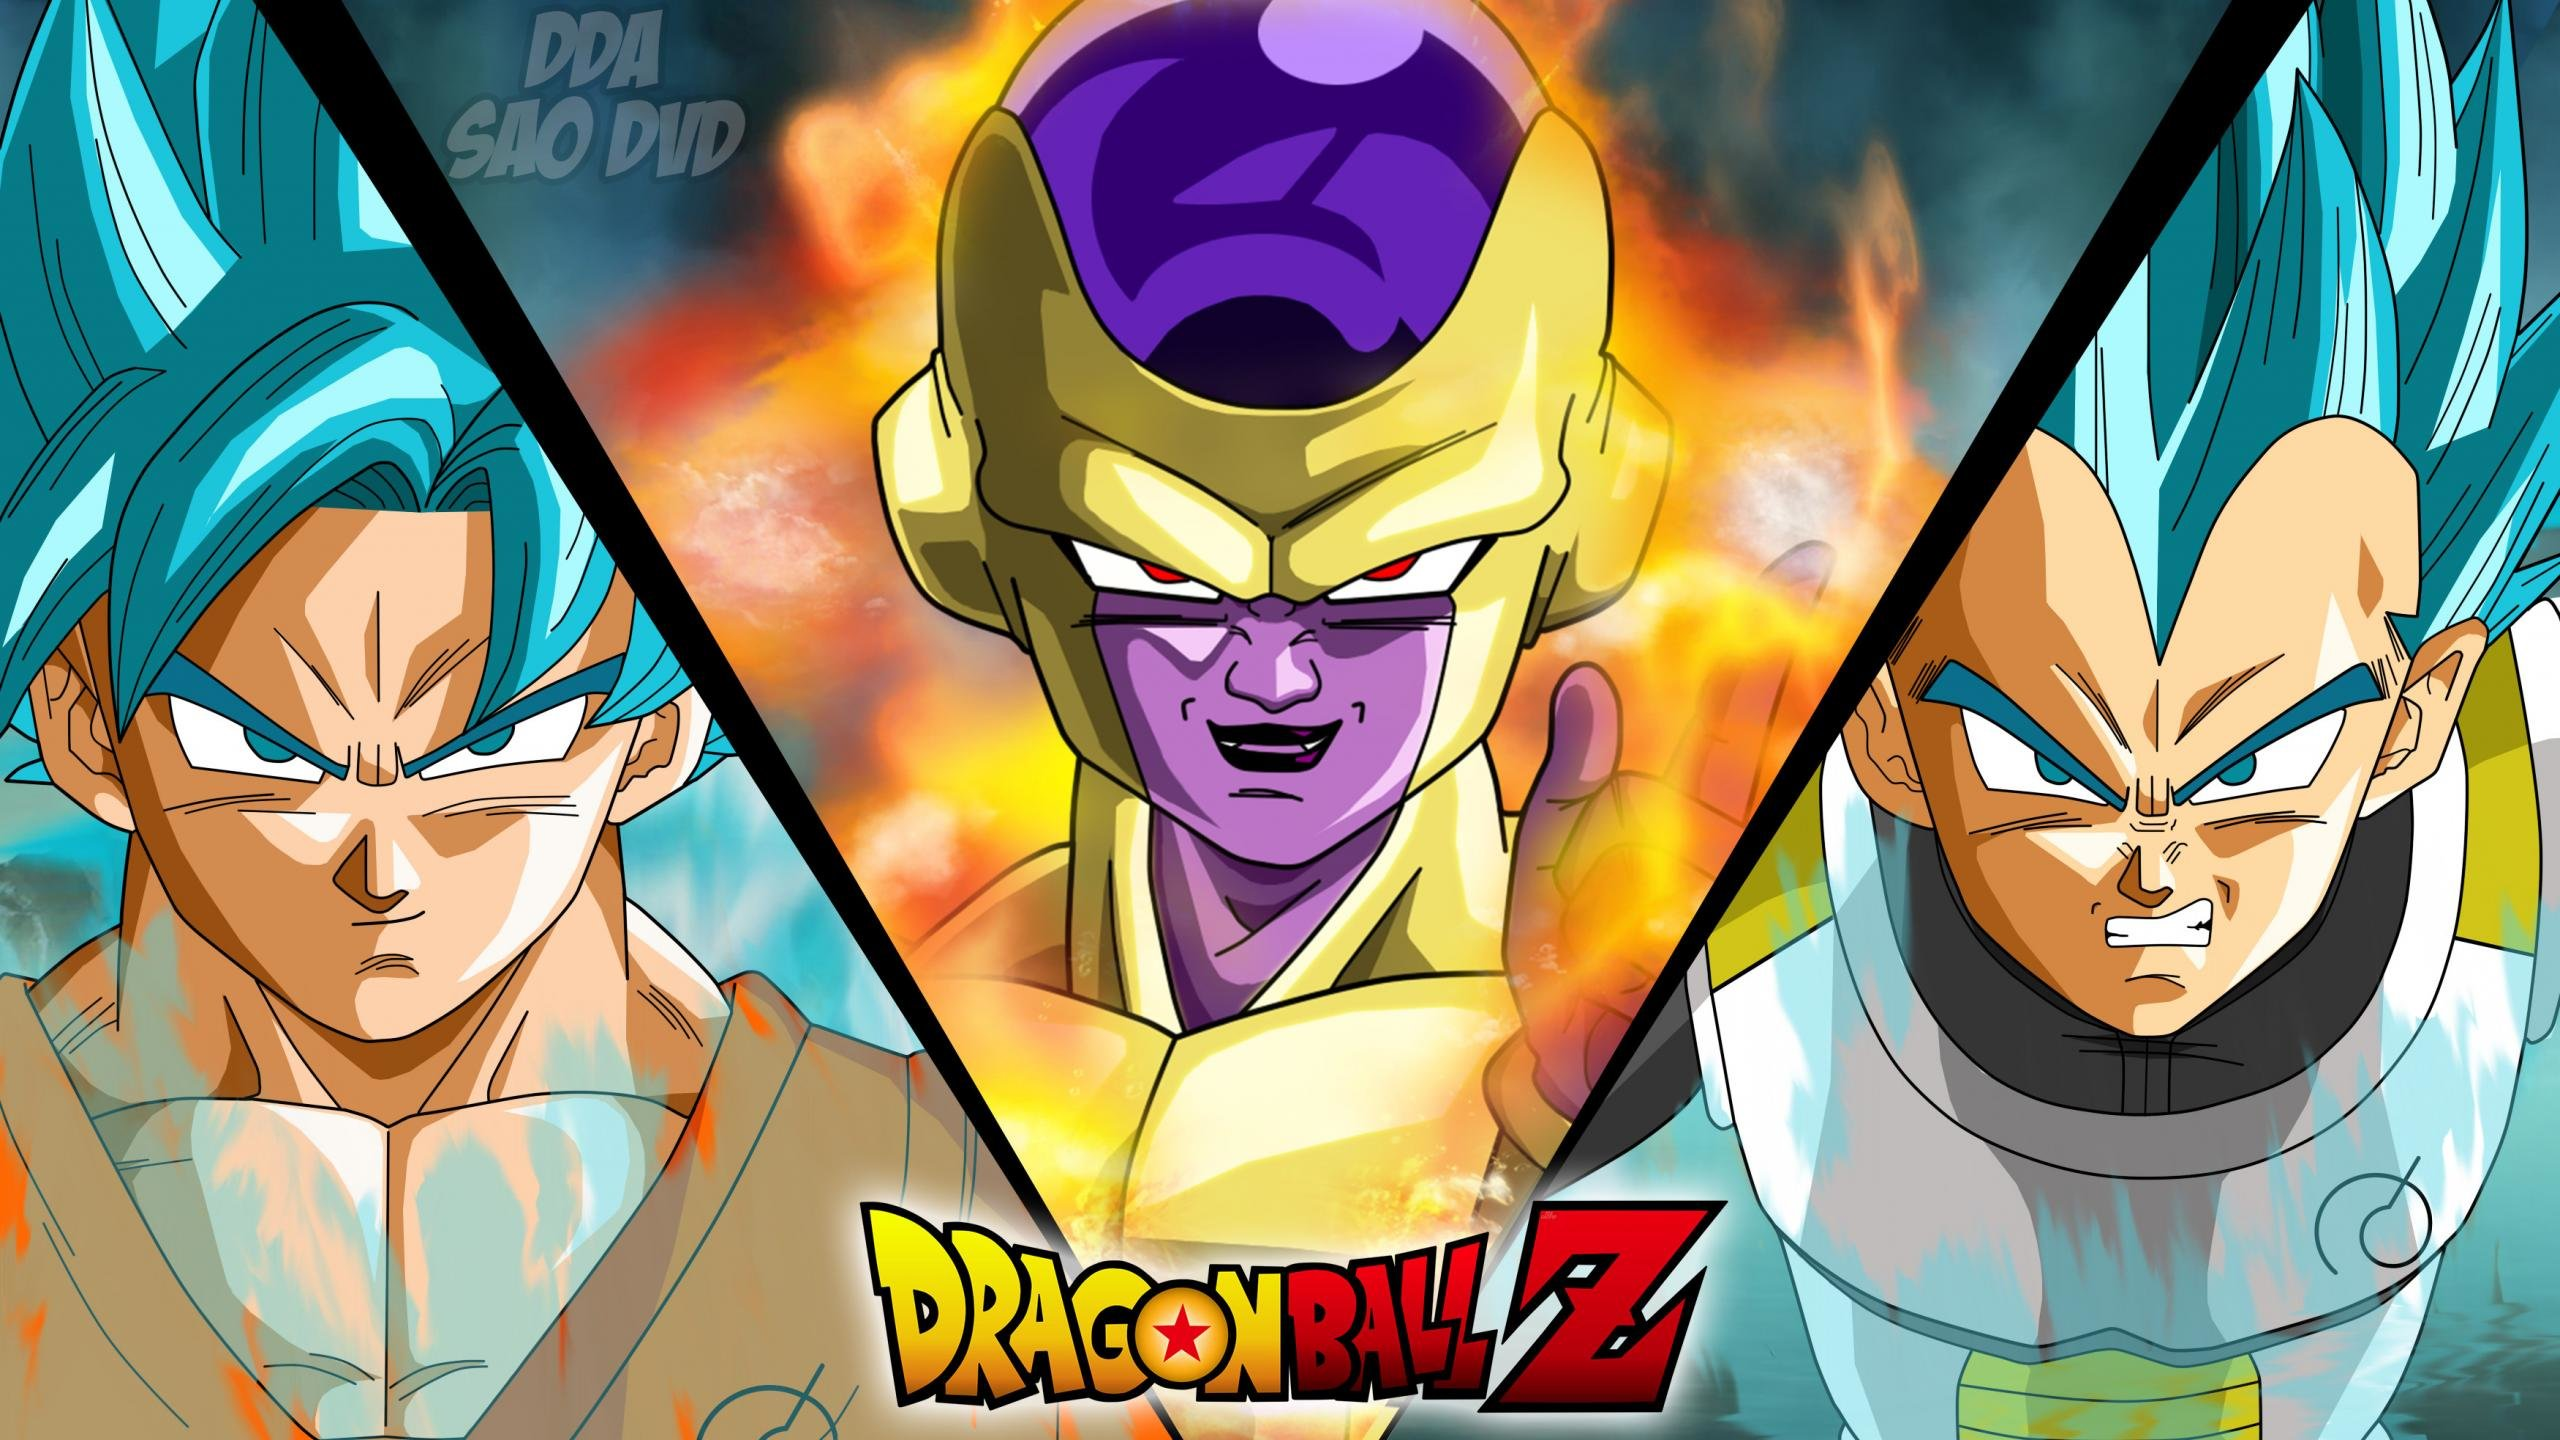 Download hd 2560x1440 Dragon Ball Z: Resurrection Of F PC wallpaper ID:391563 for free